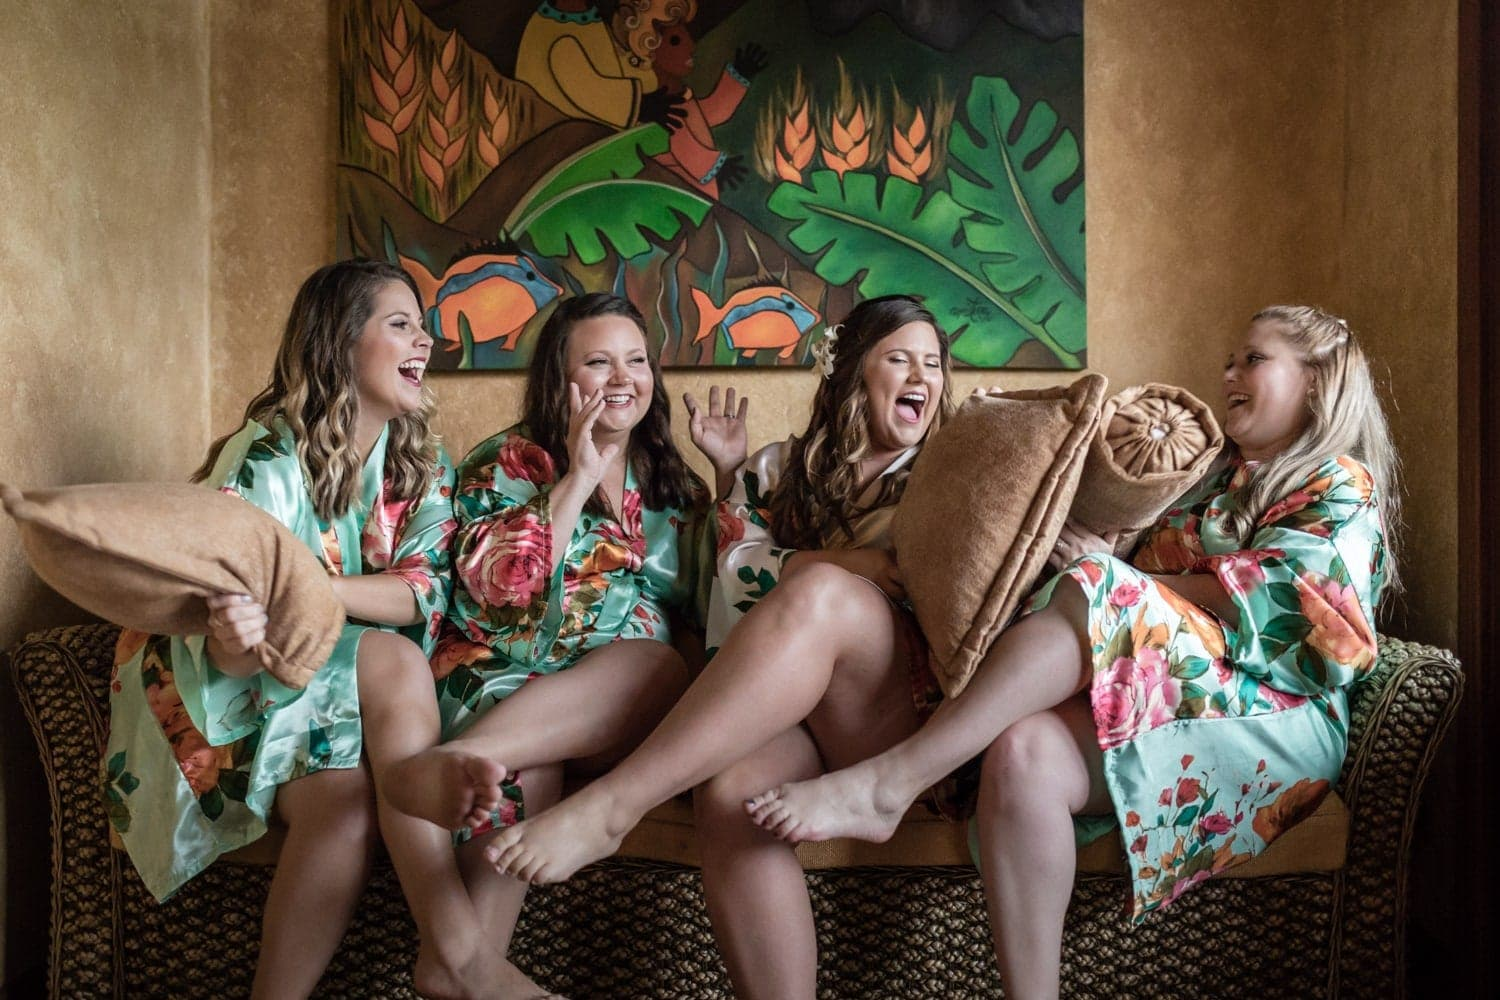 Bride and bridesmaids having fun while getting ready for wedding ceremony.